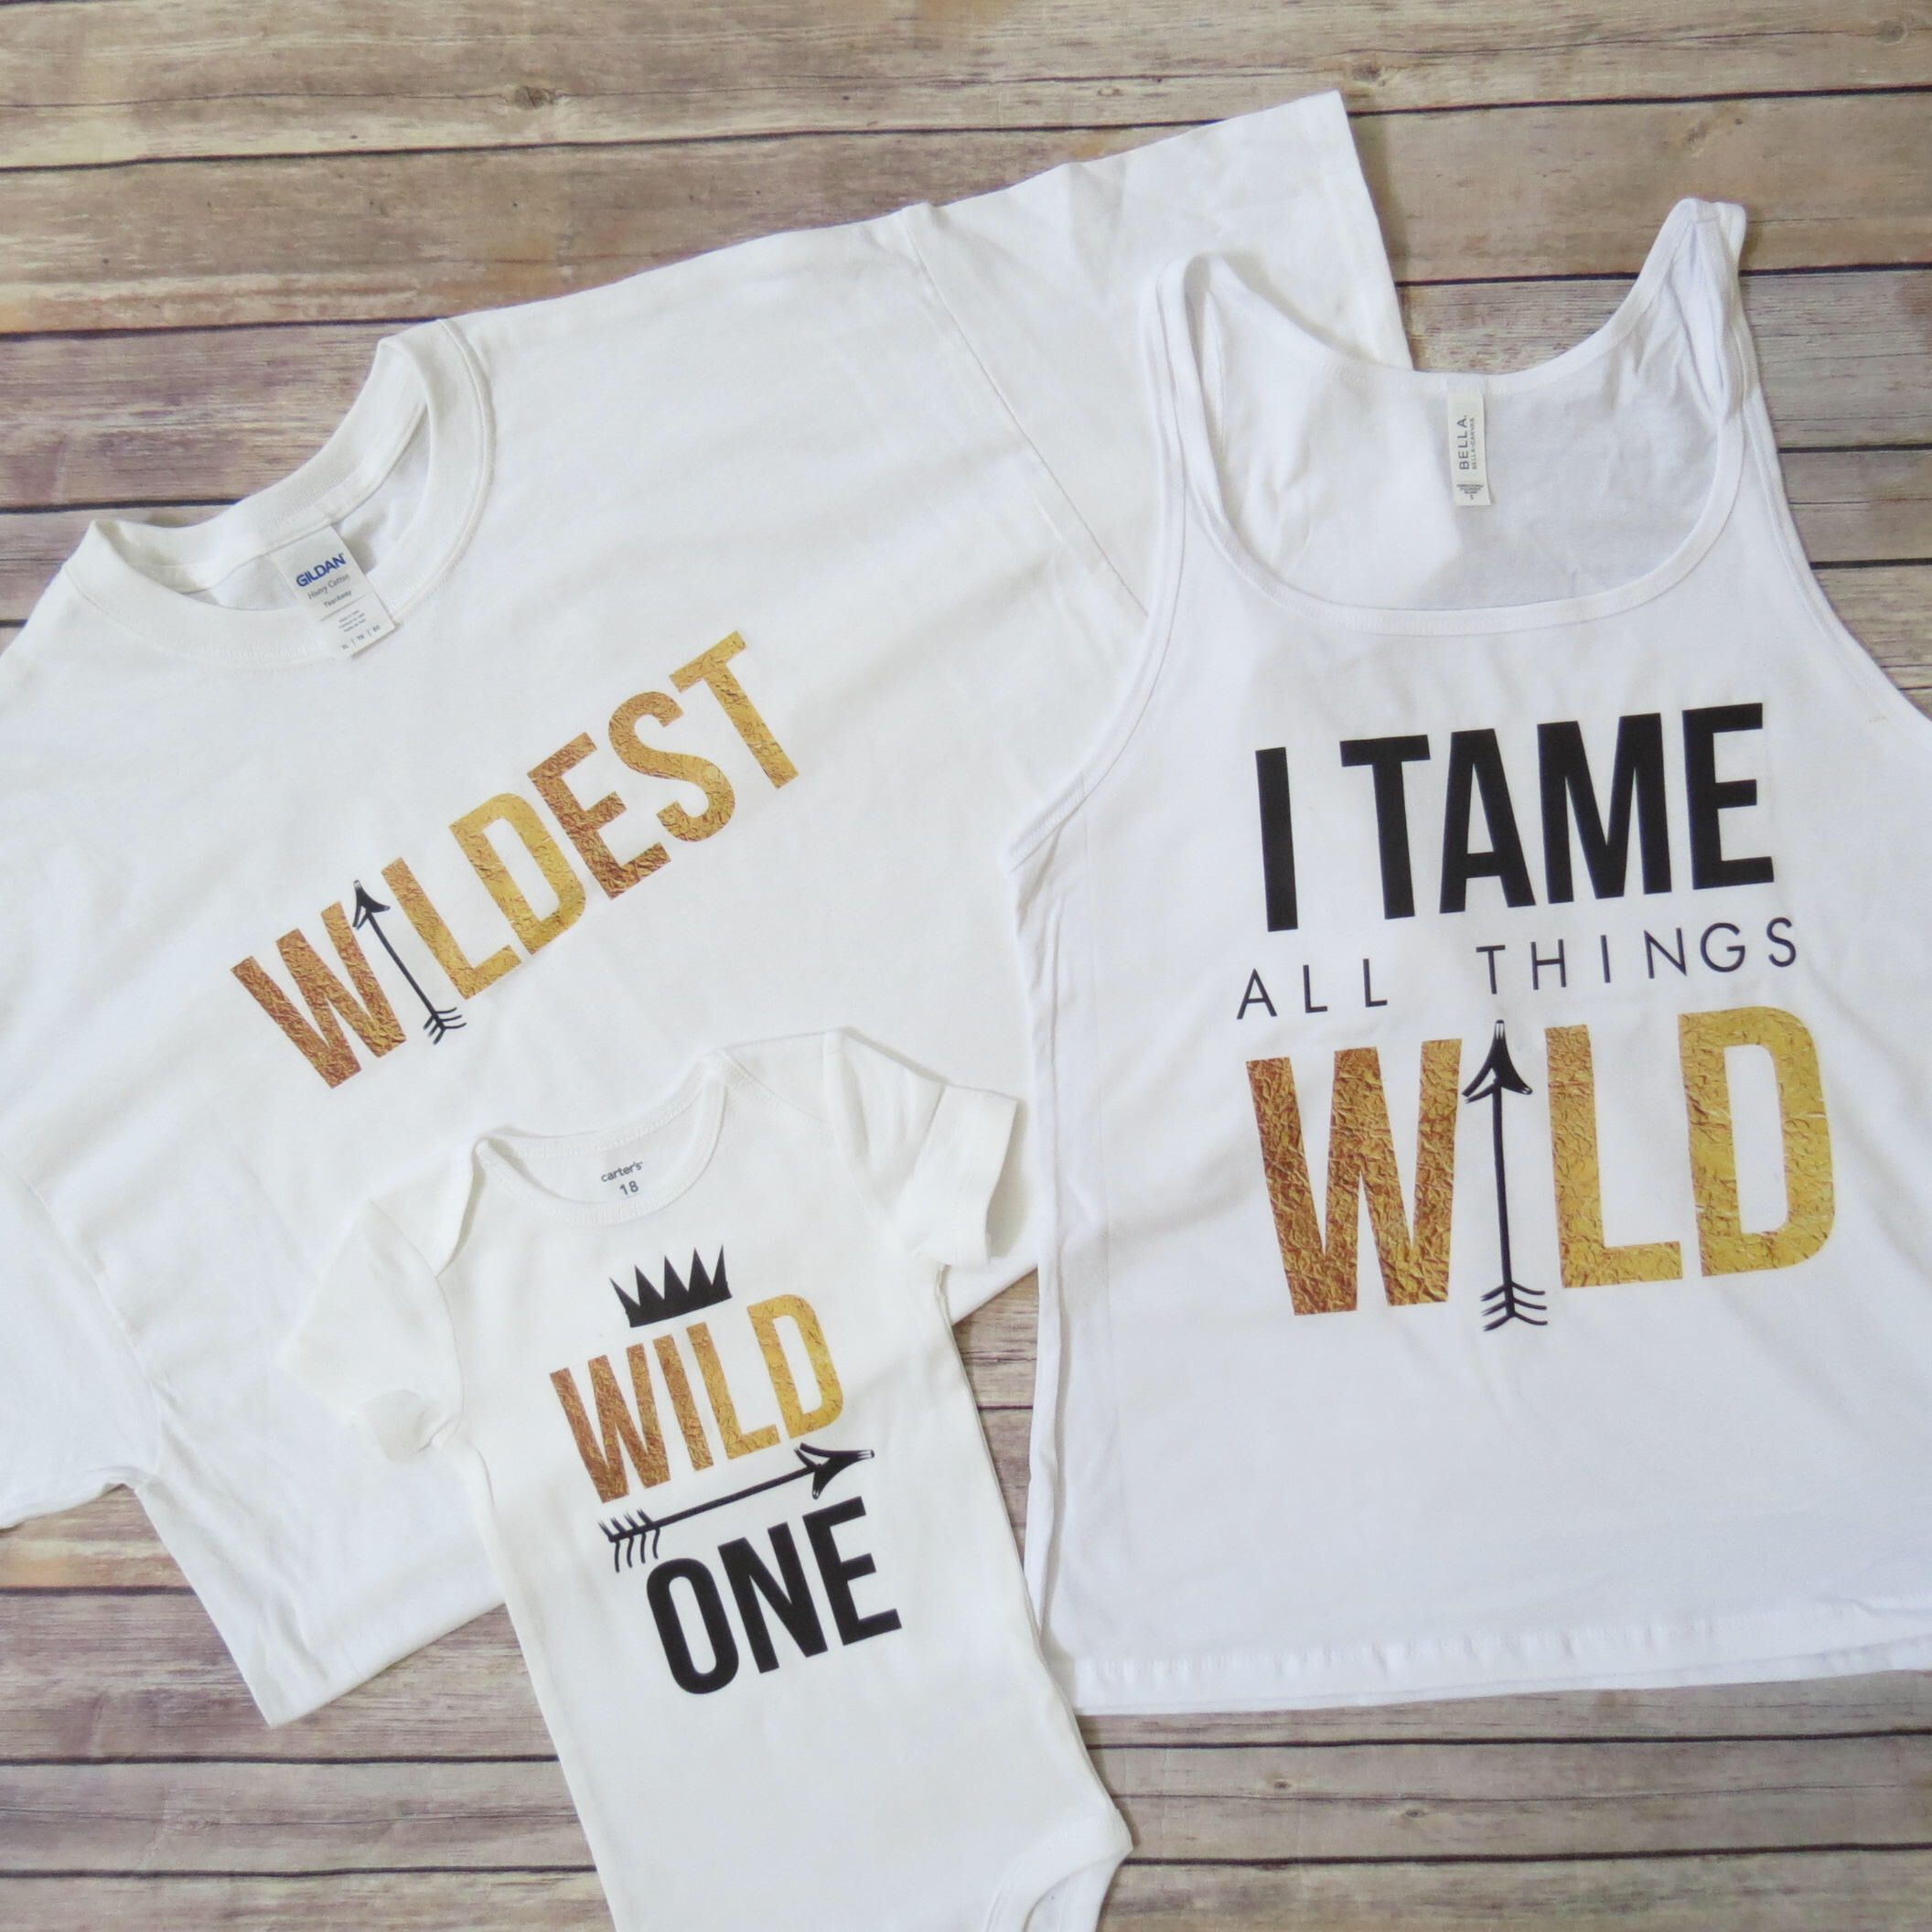 3 Shirt Set Matching WILD theme shirts Wild and e Shirts Mom